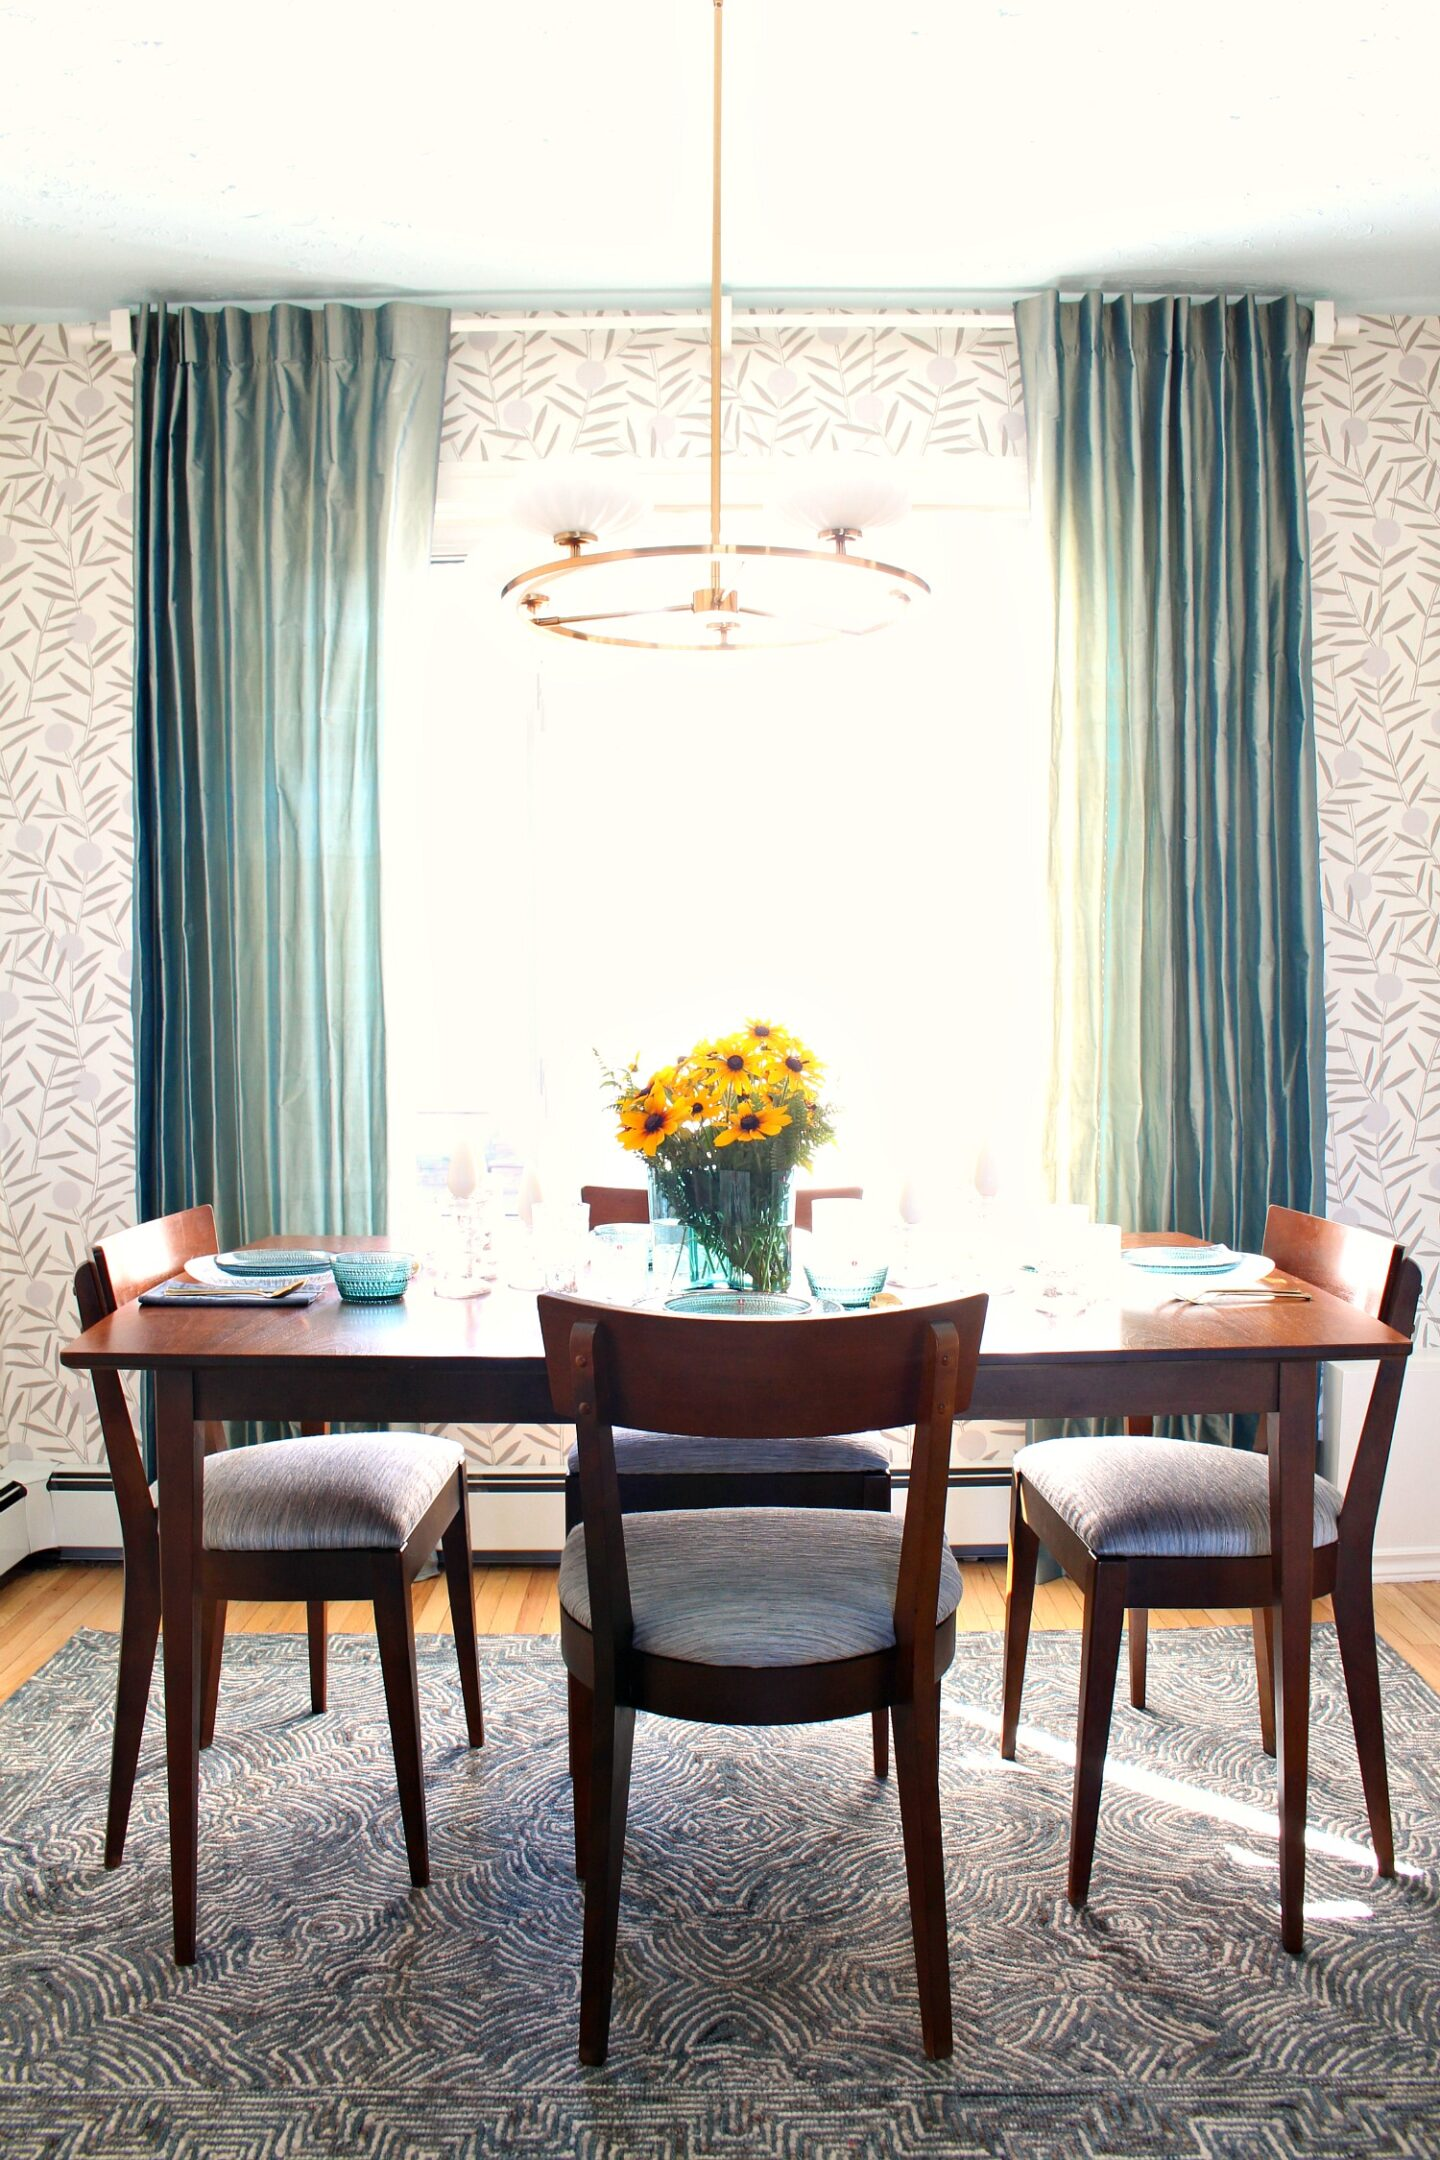 MCM Style Dining Room Decor